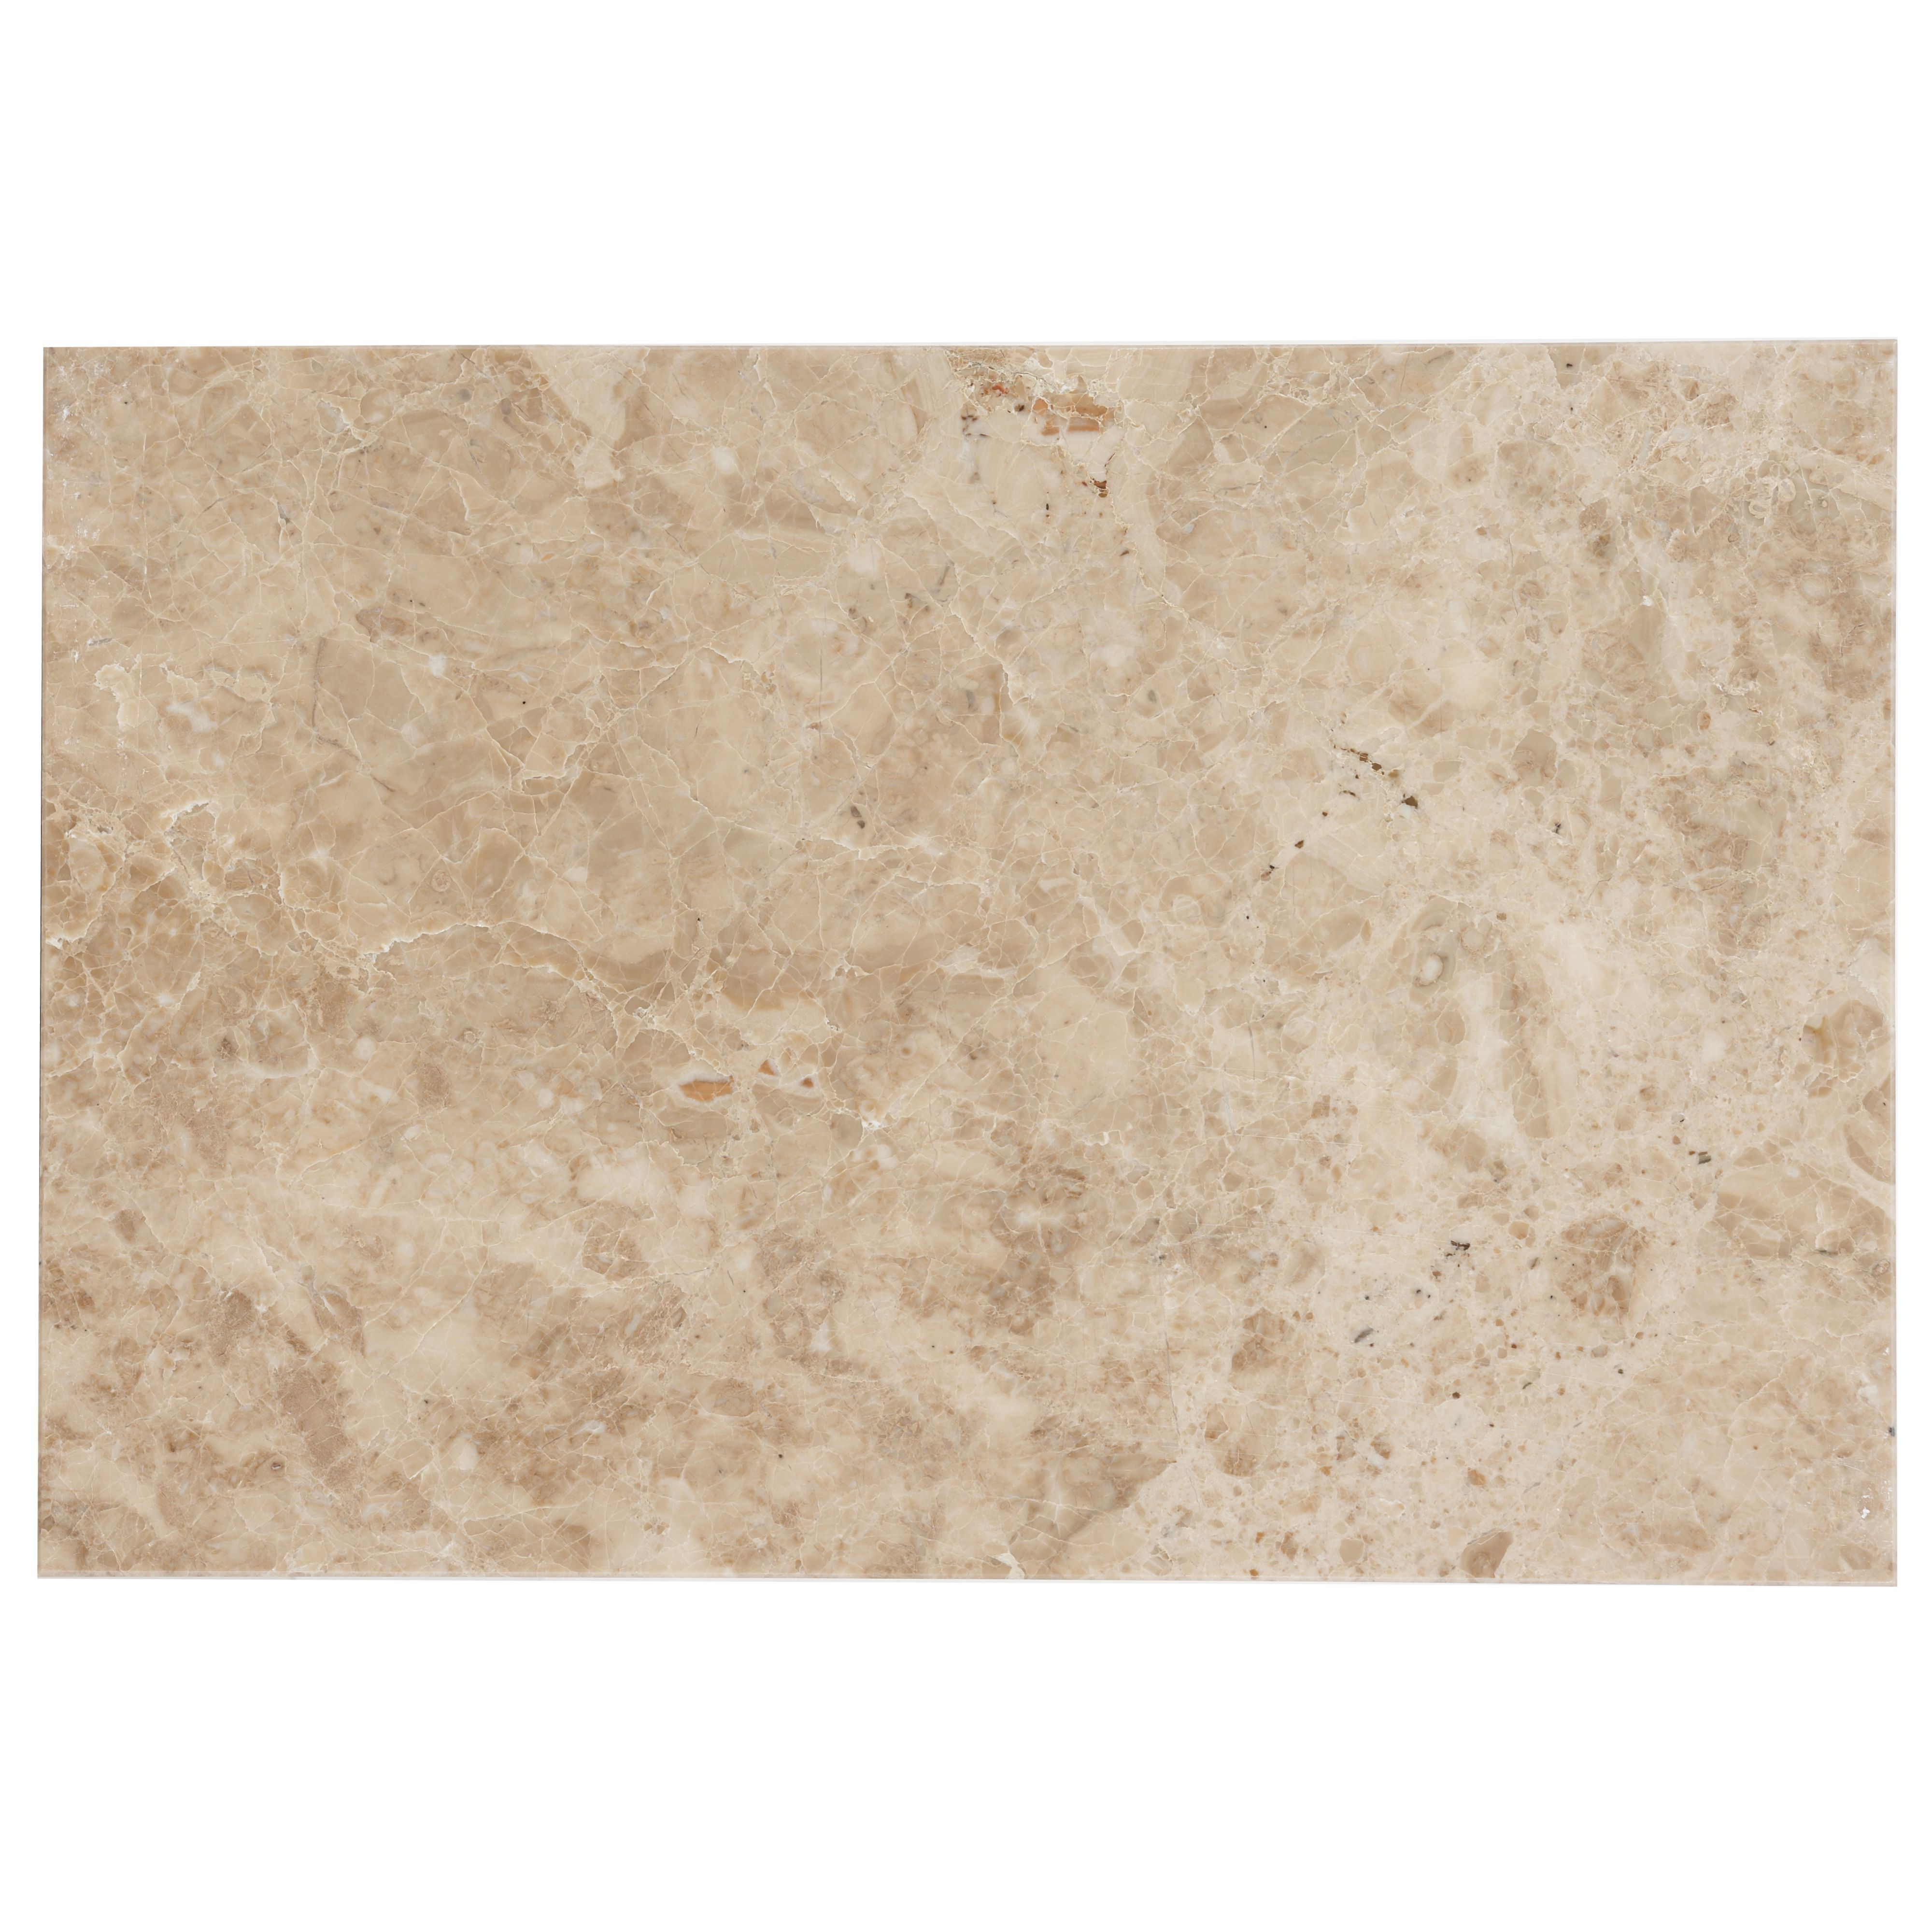 Beige Marble Effect Marble Wall & Floor Tile, Pack Of 5, (l)305mm (w)457mm